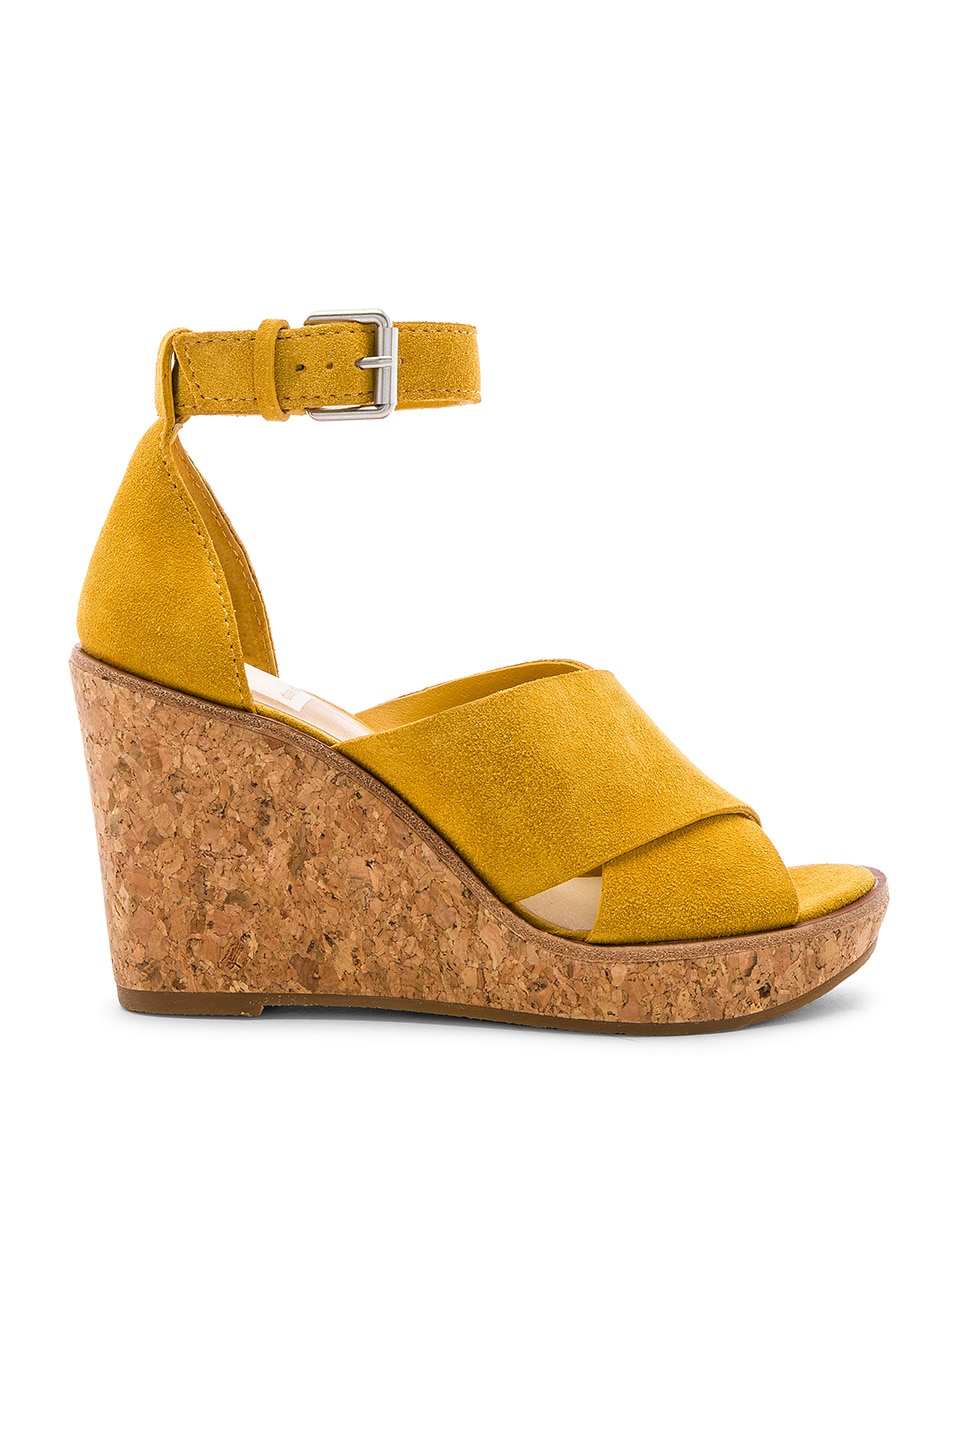 Dolce Vita Urbane Wedge in Honey